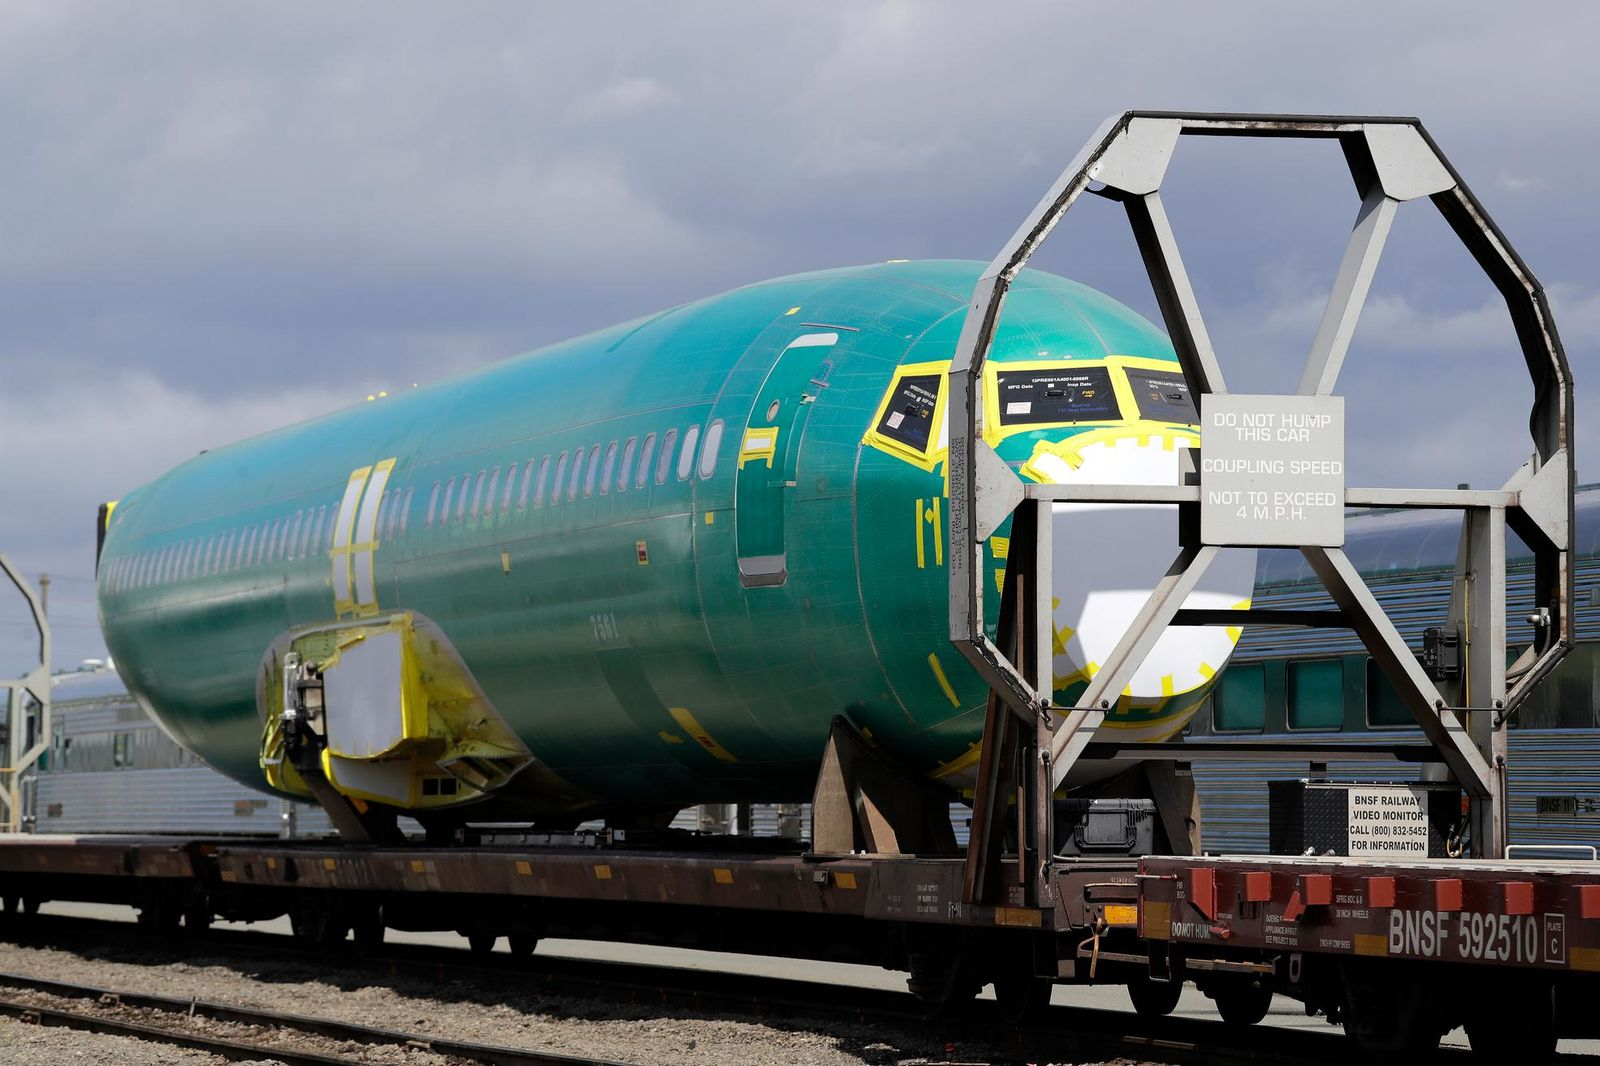 FILE - In this April 9, 2019, file photo a Boeing 737 fuselage, eventually bound for Boeing's production facility in nearby Renton, Wash., sits on a flatcar rail car at a rail yard in Seattle. (AP Photo/Elaine Thompson, File)